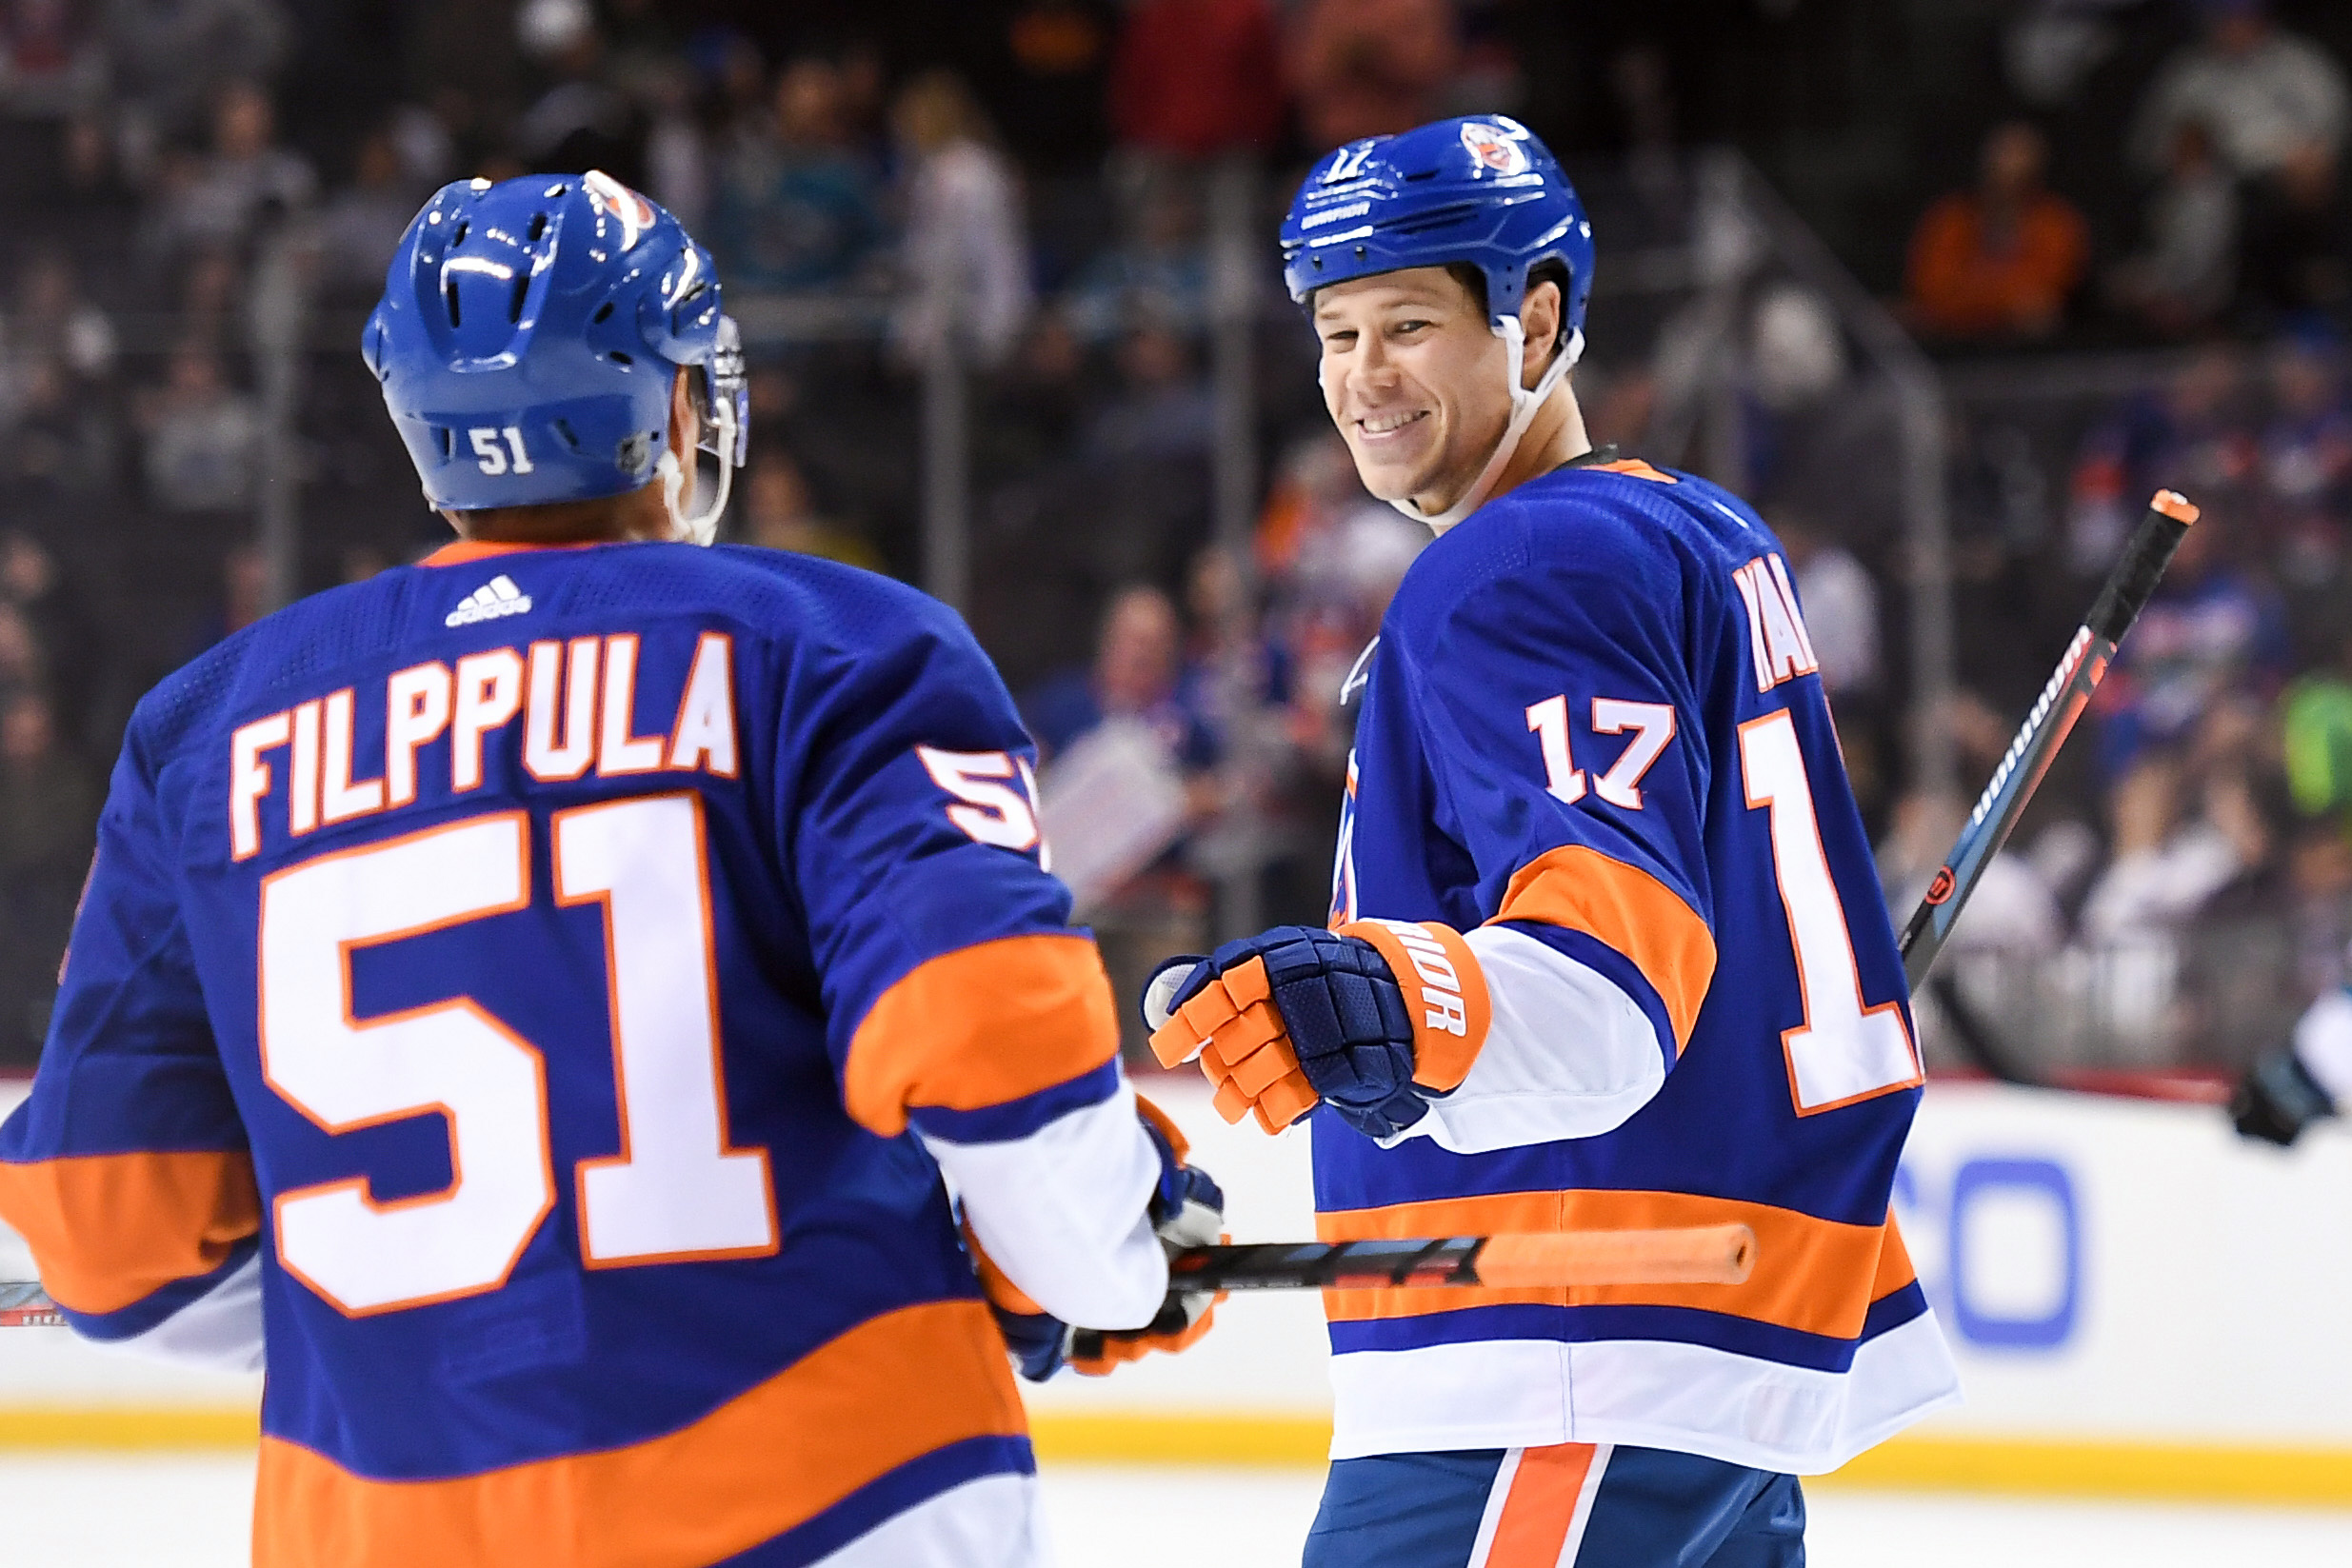 Oct 8, 2018; Brooklyn, NY, USA; New York Islanders left wing Matt Martin (17) celebrates his goal with New York Islanders center Valtteri Filppula (51) against the San Jose Sharks during the third period at Barclays Center. Mandatory Credit: Dennis Schneidler-USA TODAY Sports